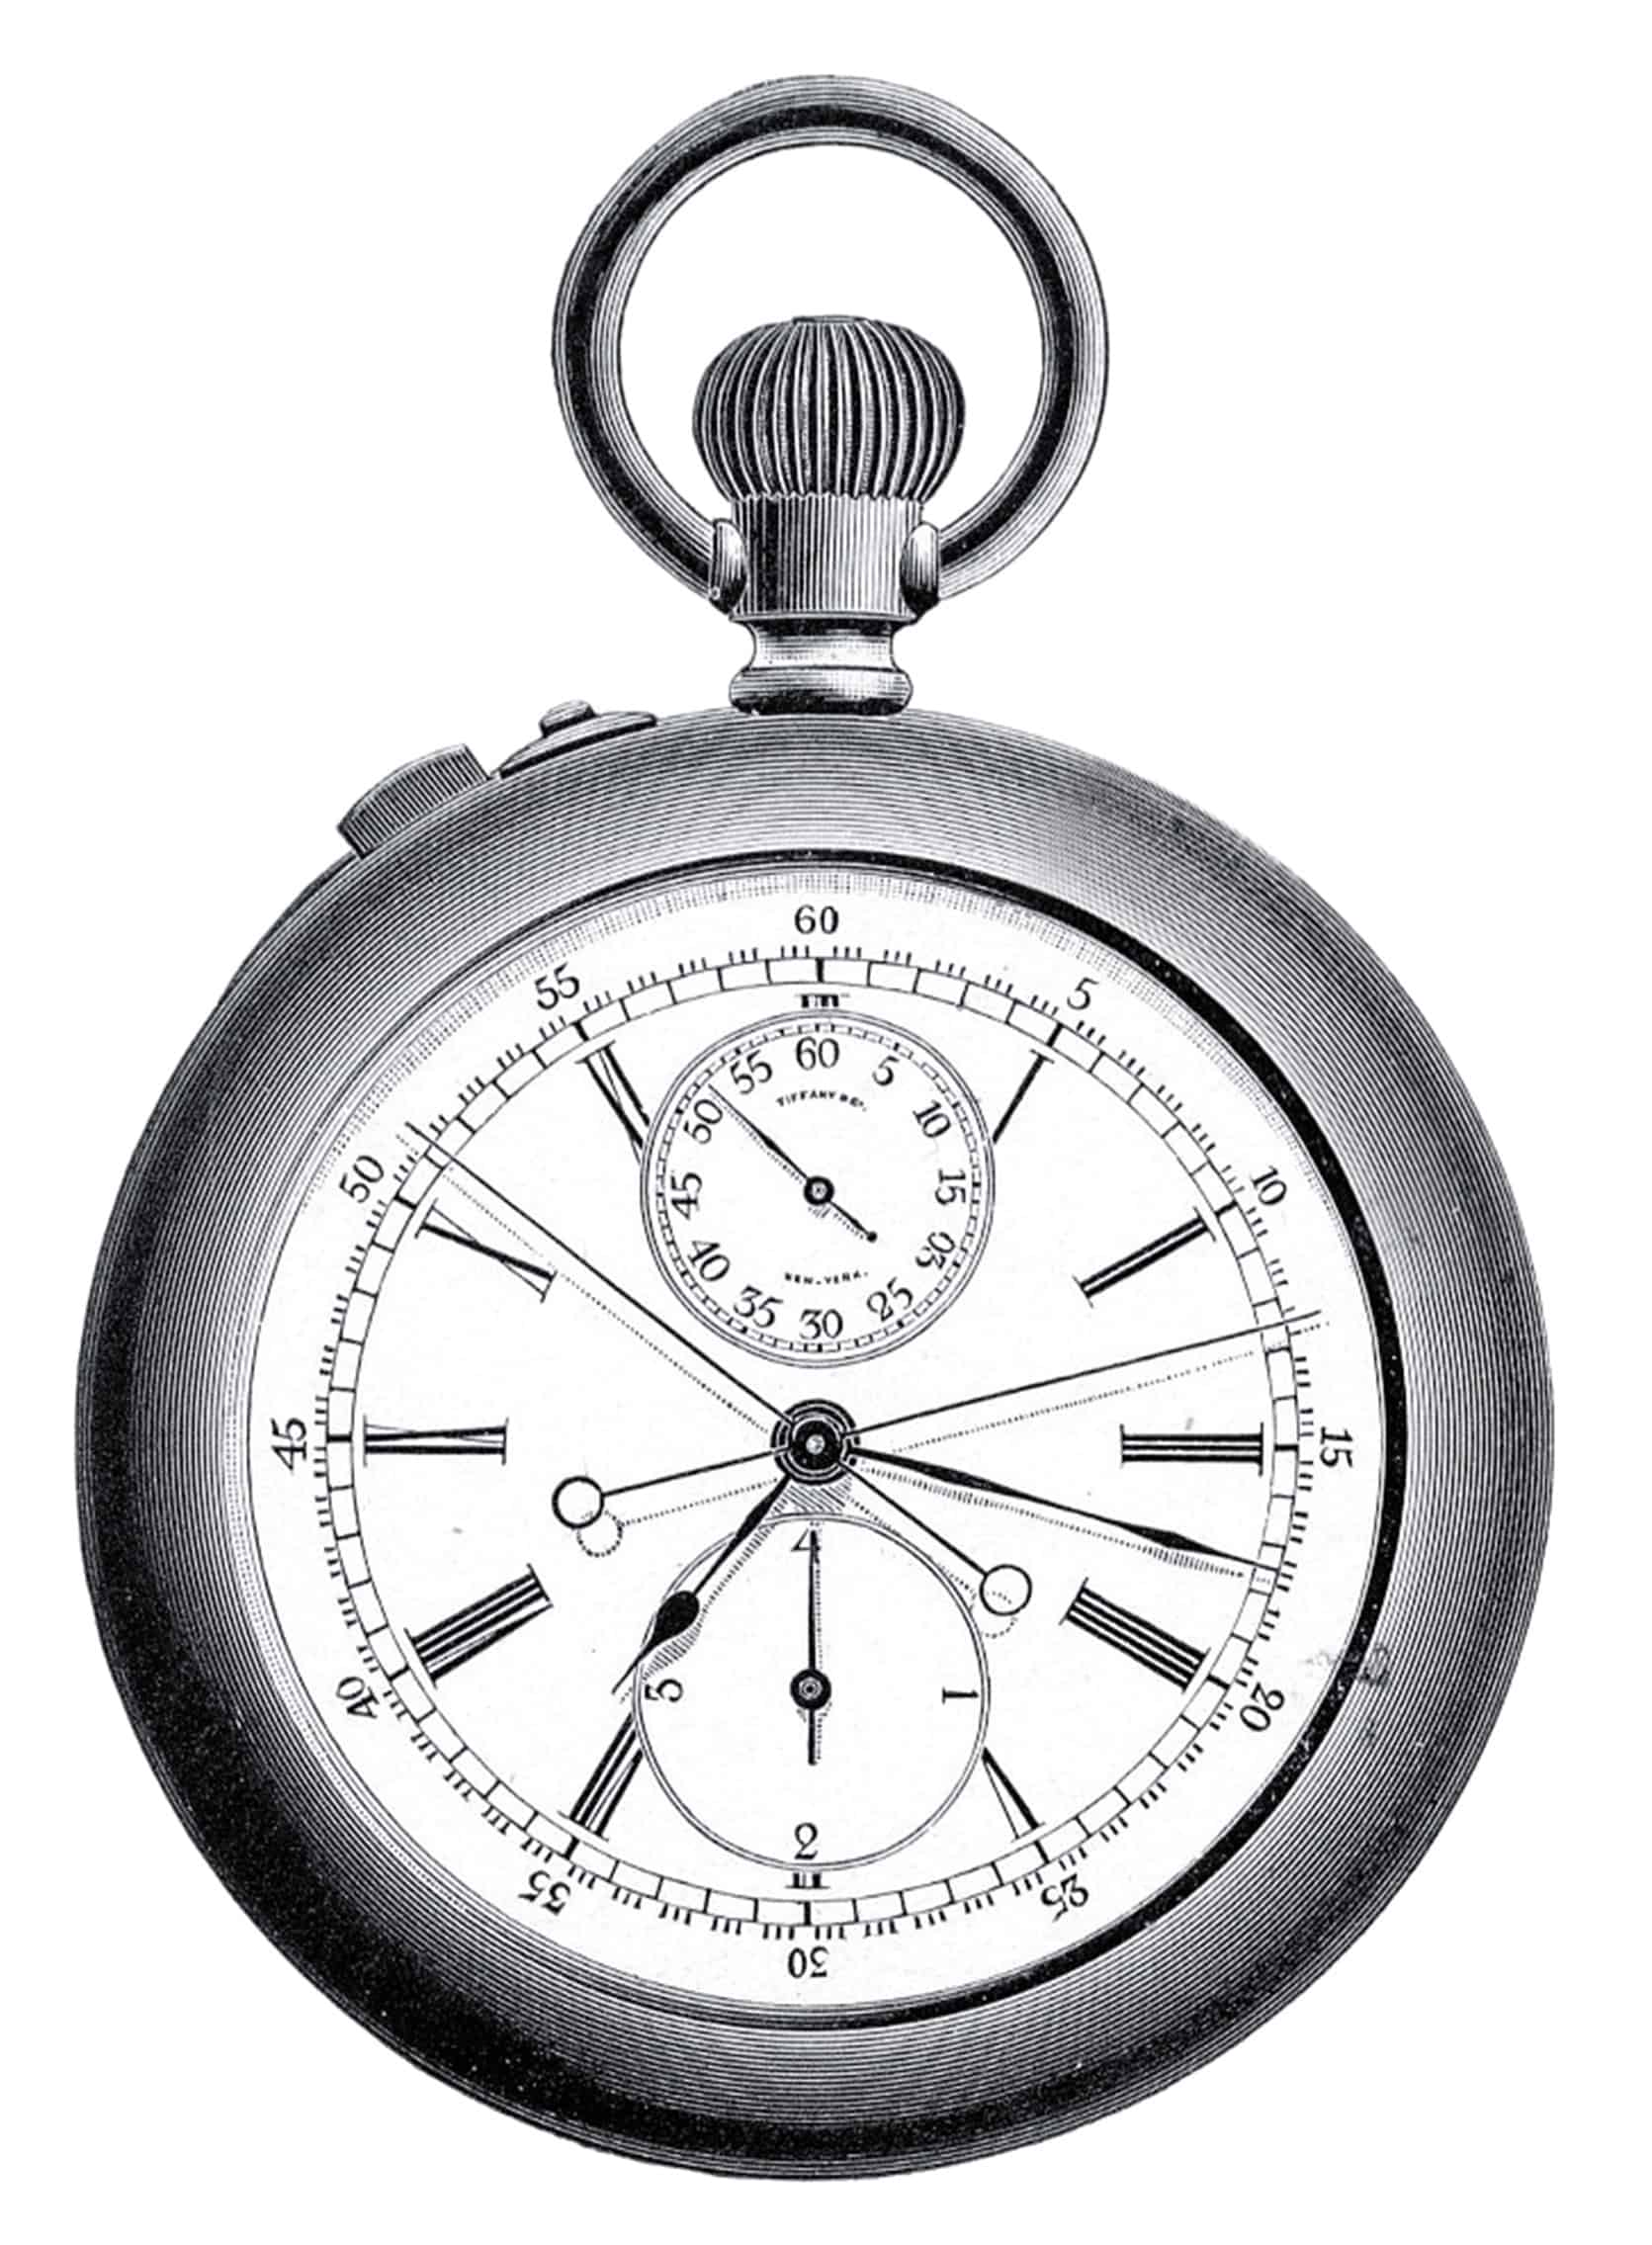 In 1868 Tiffany introduced the Tiffany Timer Americas first stopwatch